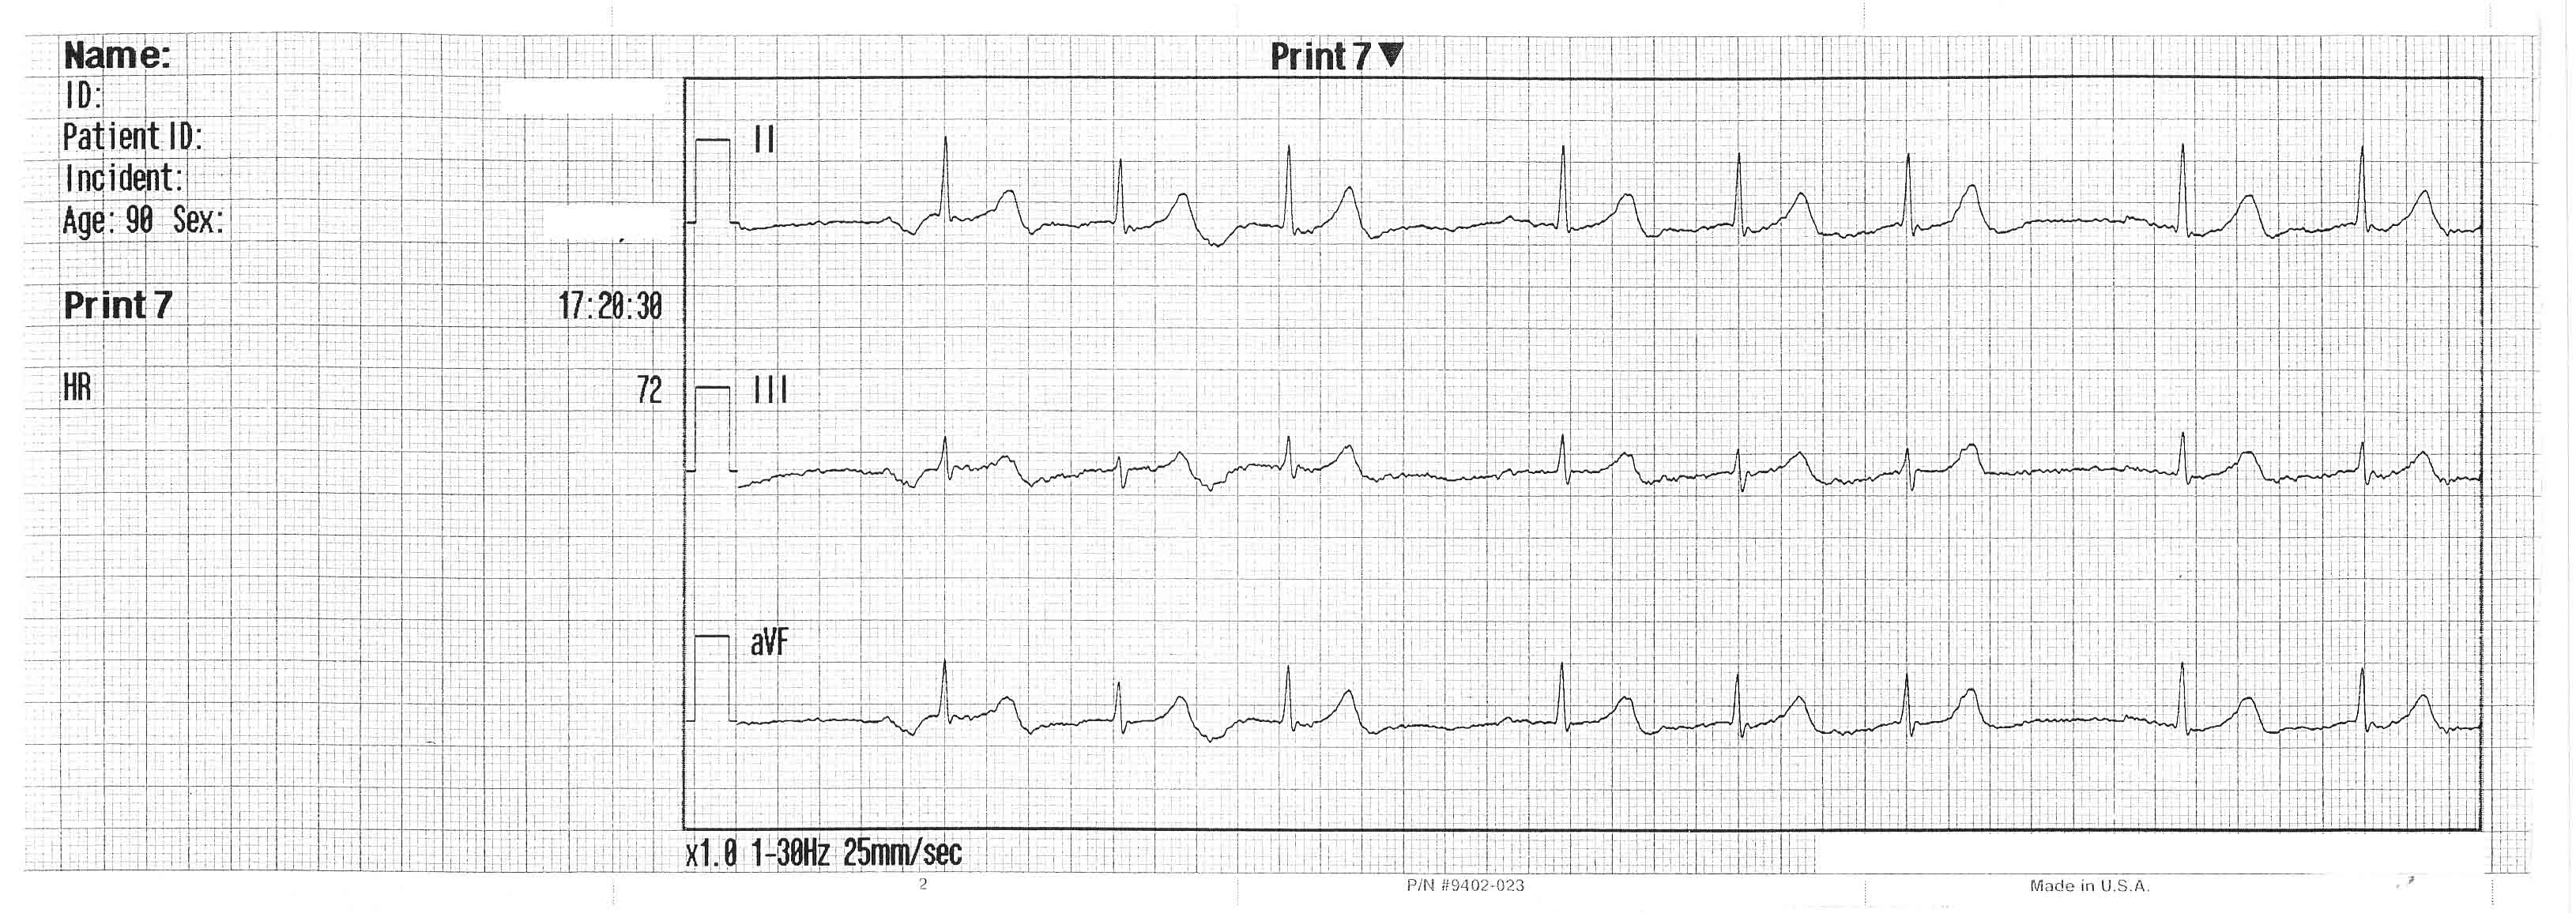 Case Stu S In Ekg Pathology